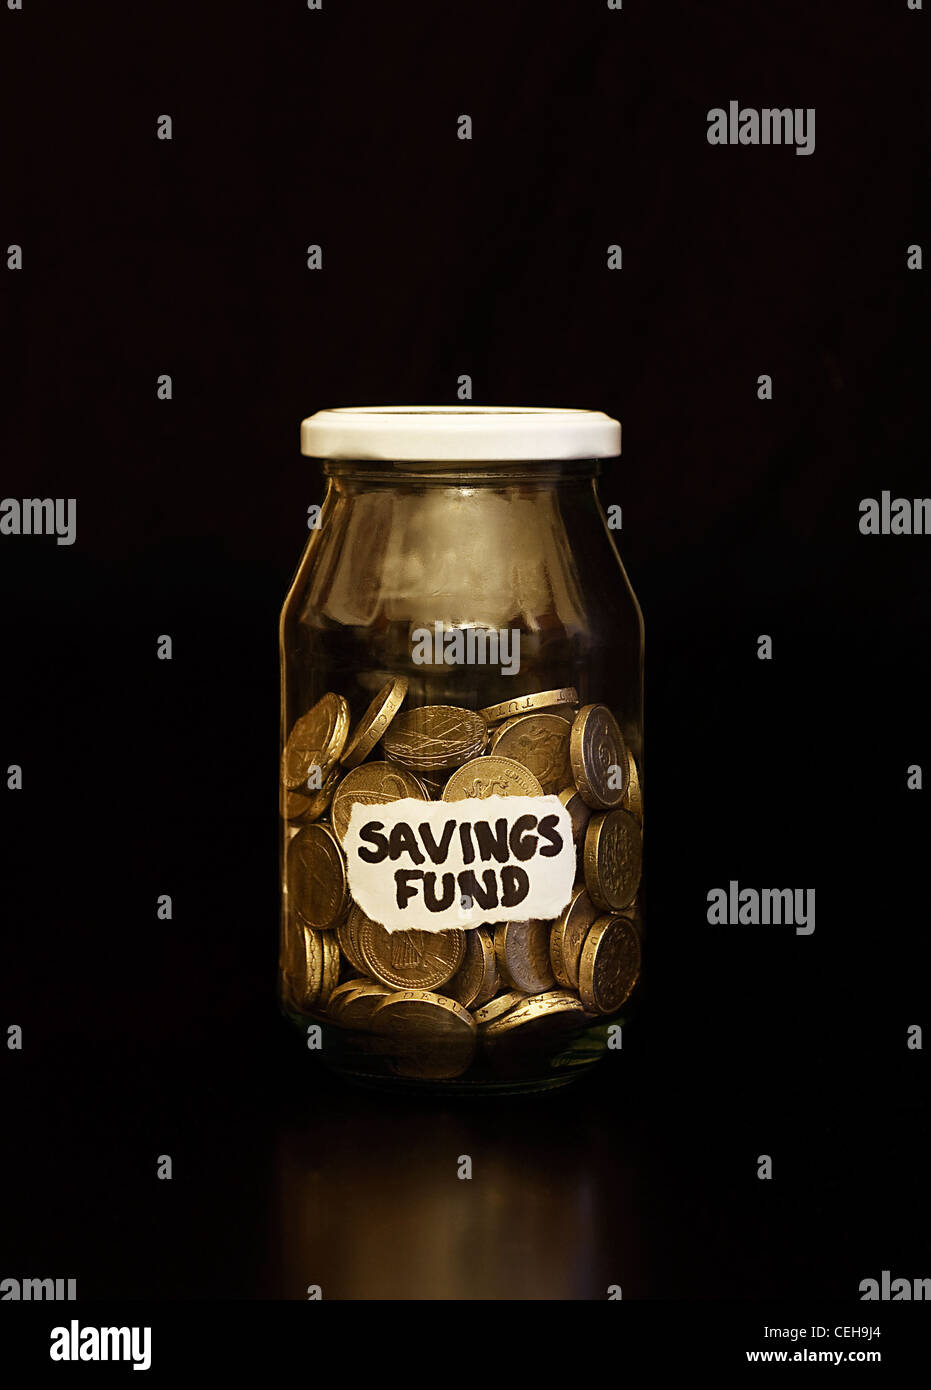 Money Jar Stock Photos Amp Money Jar Stock Images Alamy